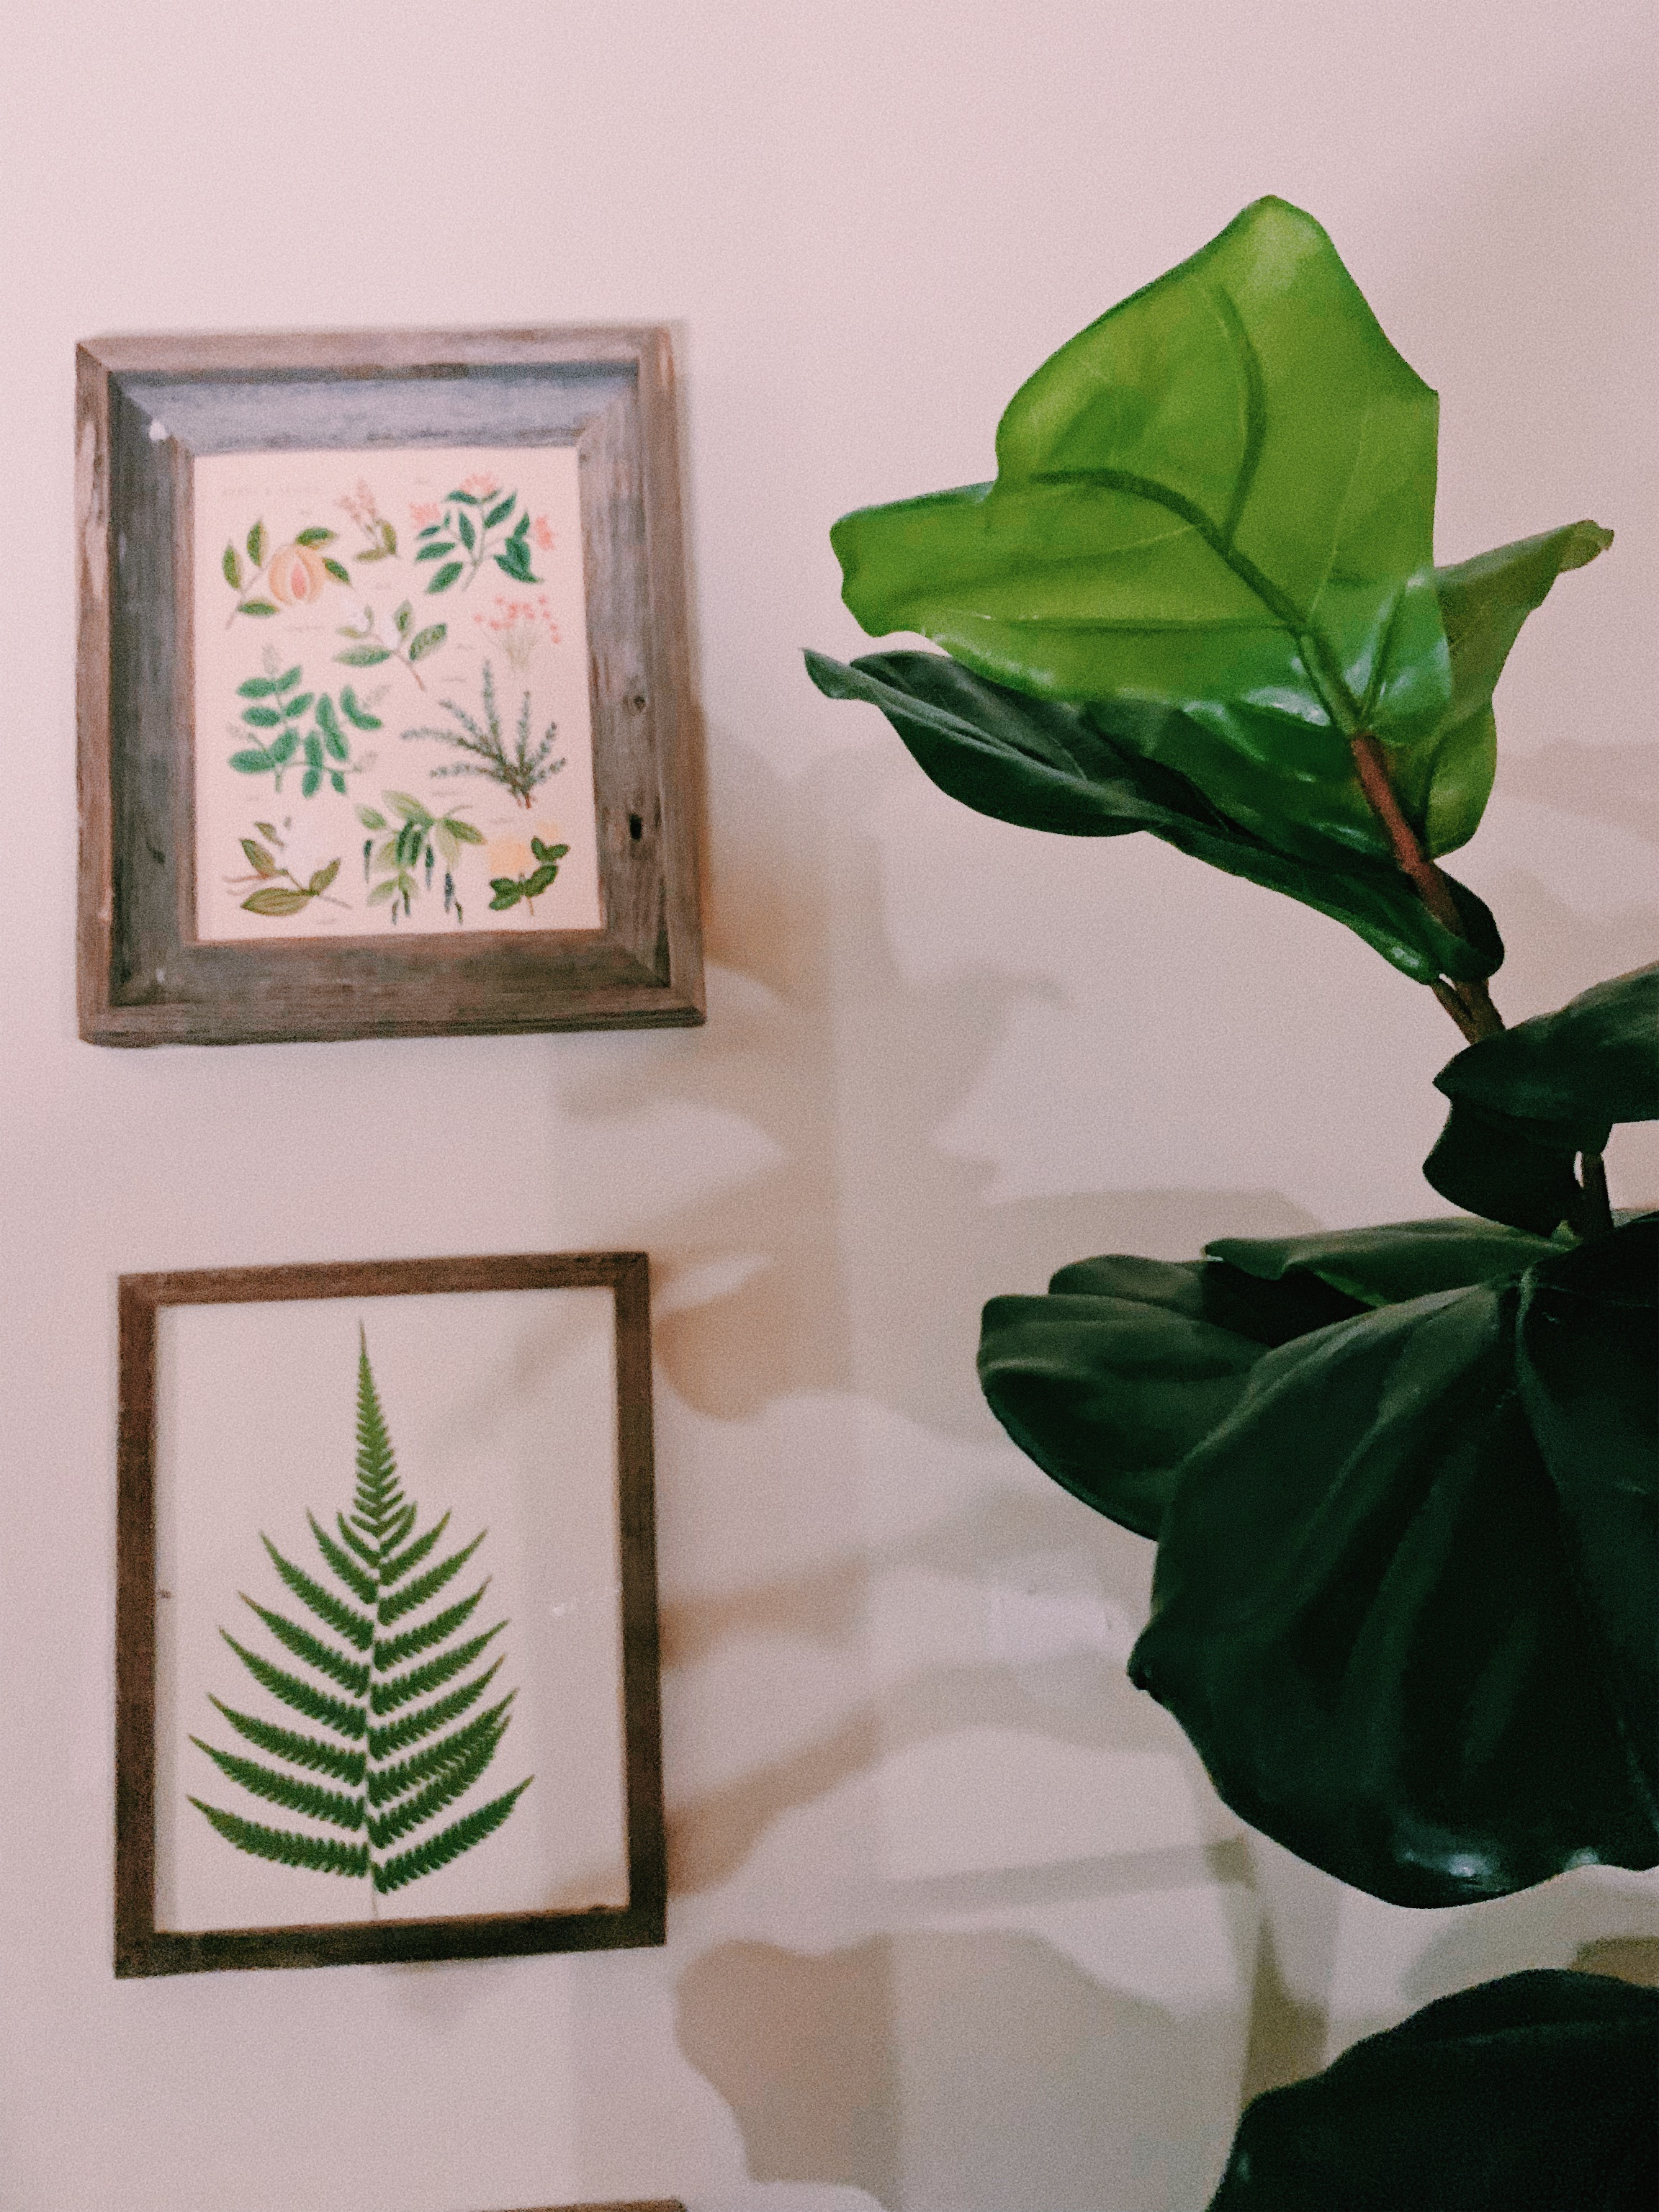 The leaf is a fern leaf preserved from 2 Belle Oak Drive, Daniel's childhood home.